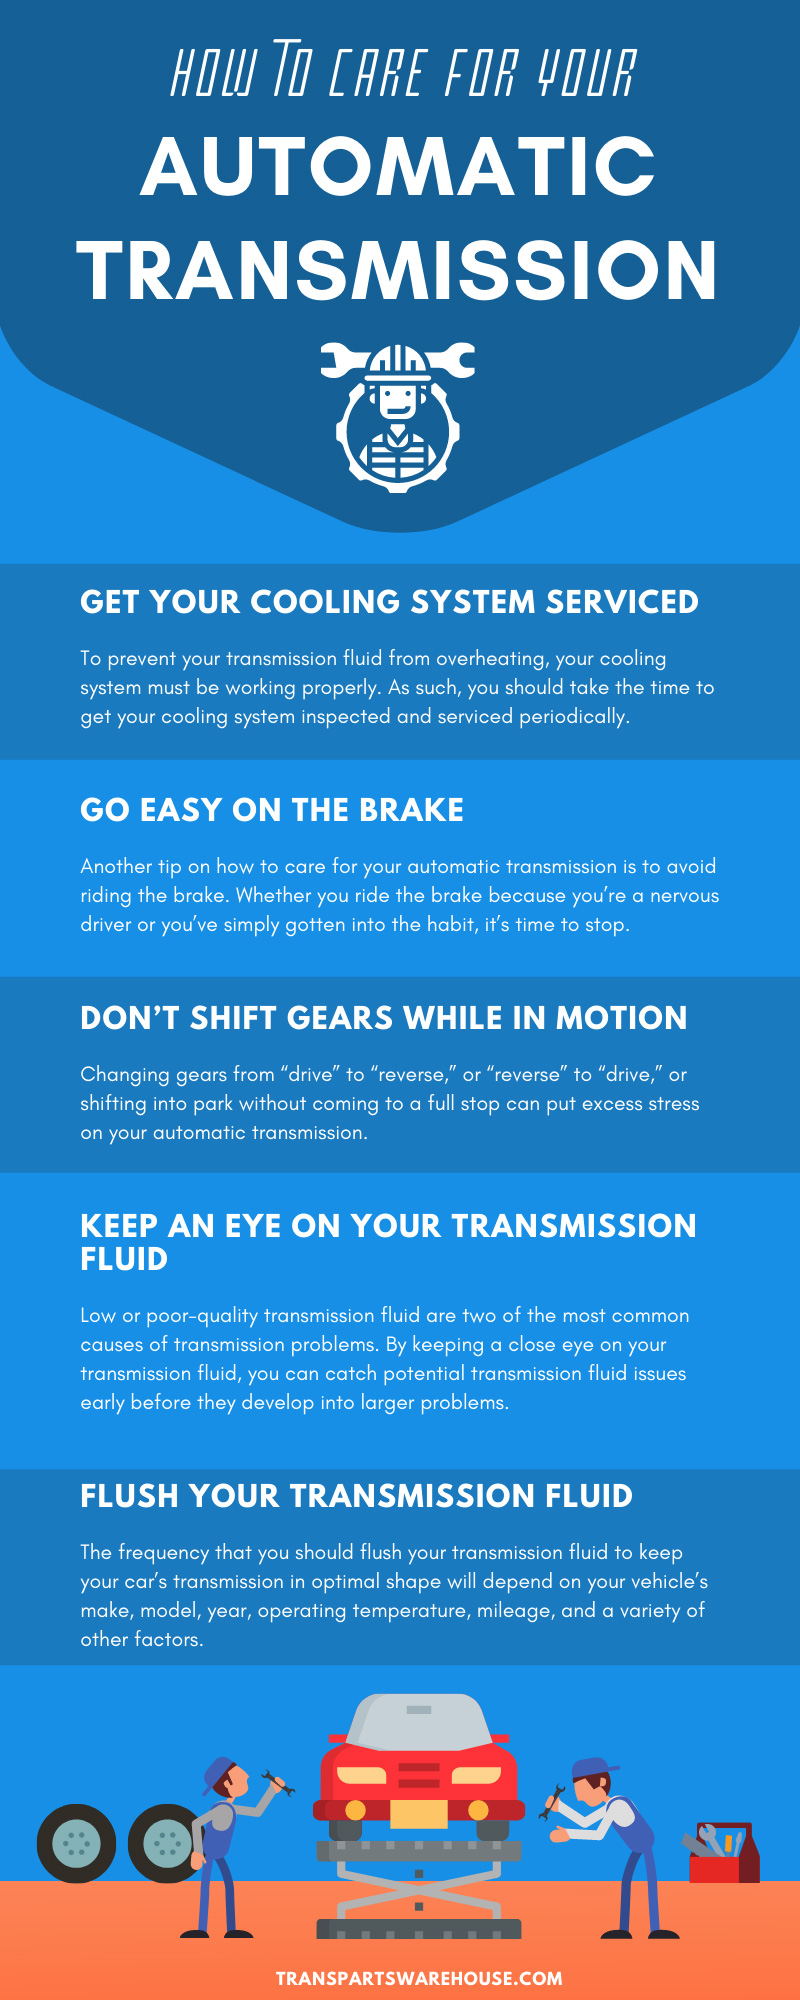 How to Care for Your Automatic Transmission